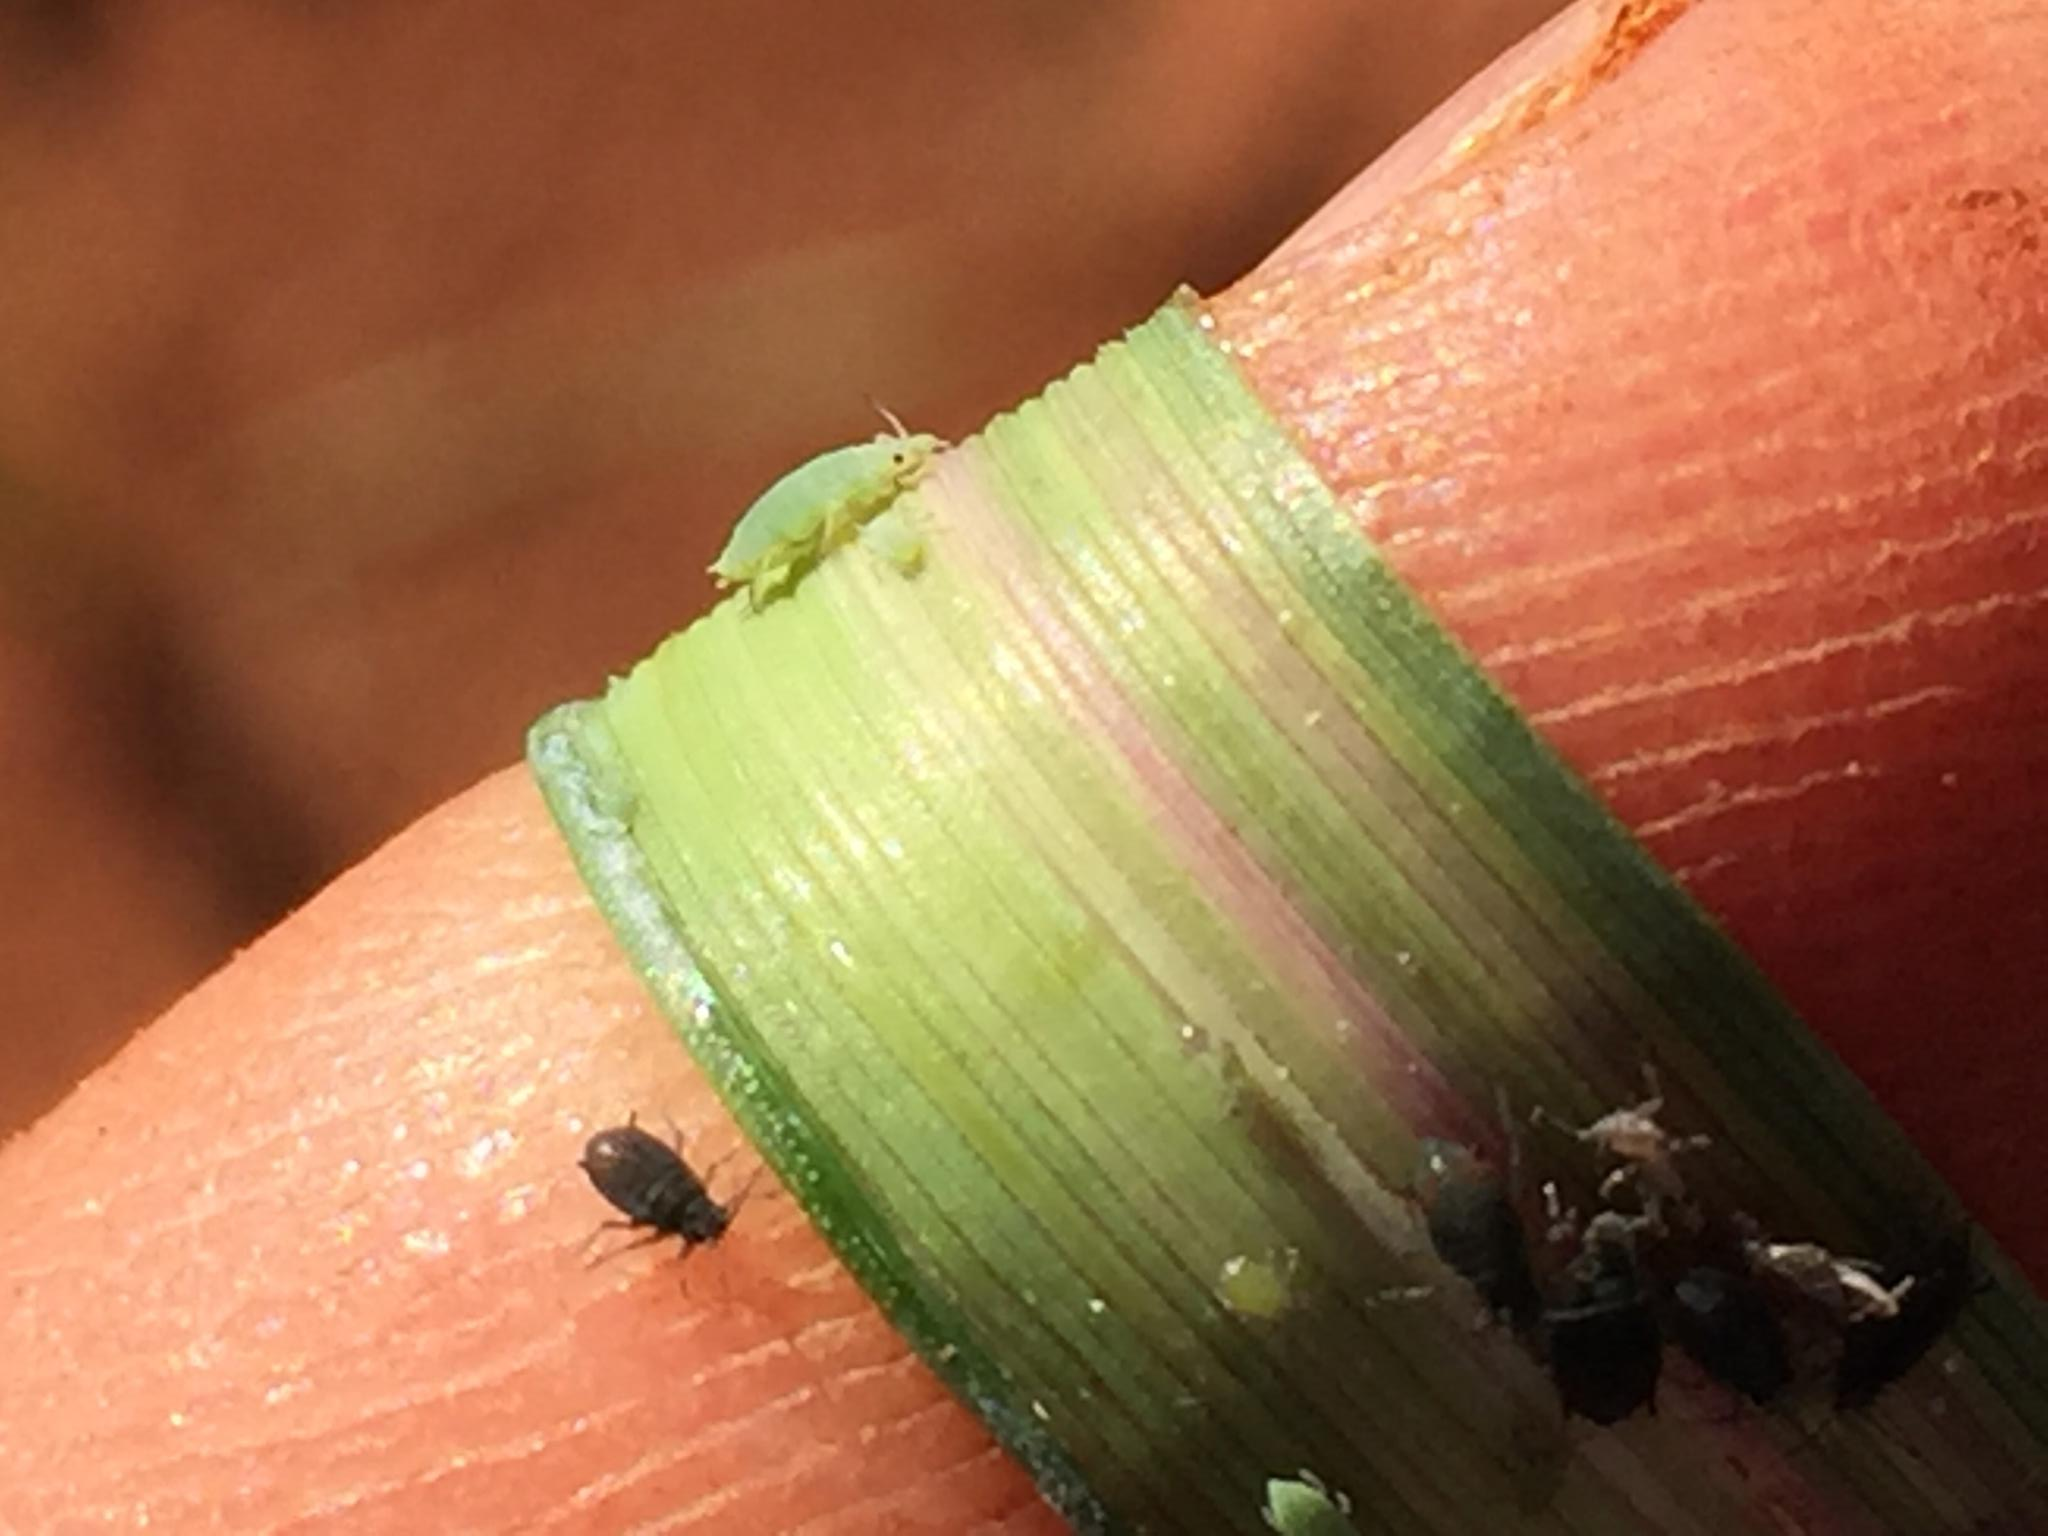 Close up of Russian wheat aphis